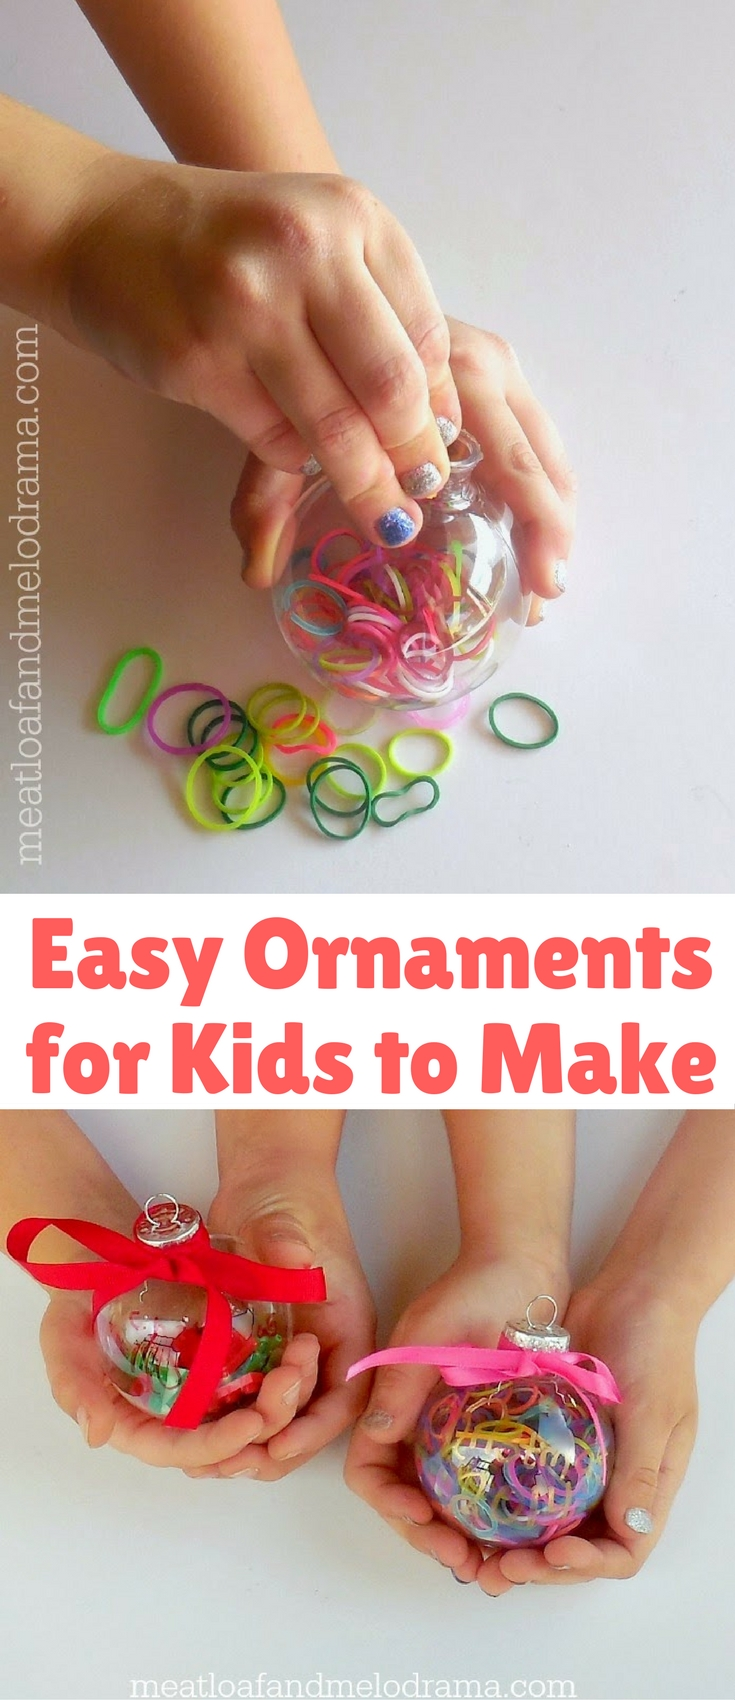 I have a super easy and super quick ornament craft to share with you today. I mean, this one takes a few short minutes, from start to finish, which is probably why my kids enjoyed it!